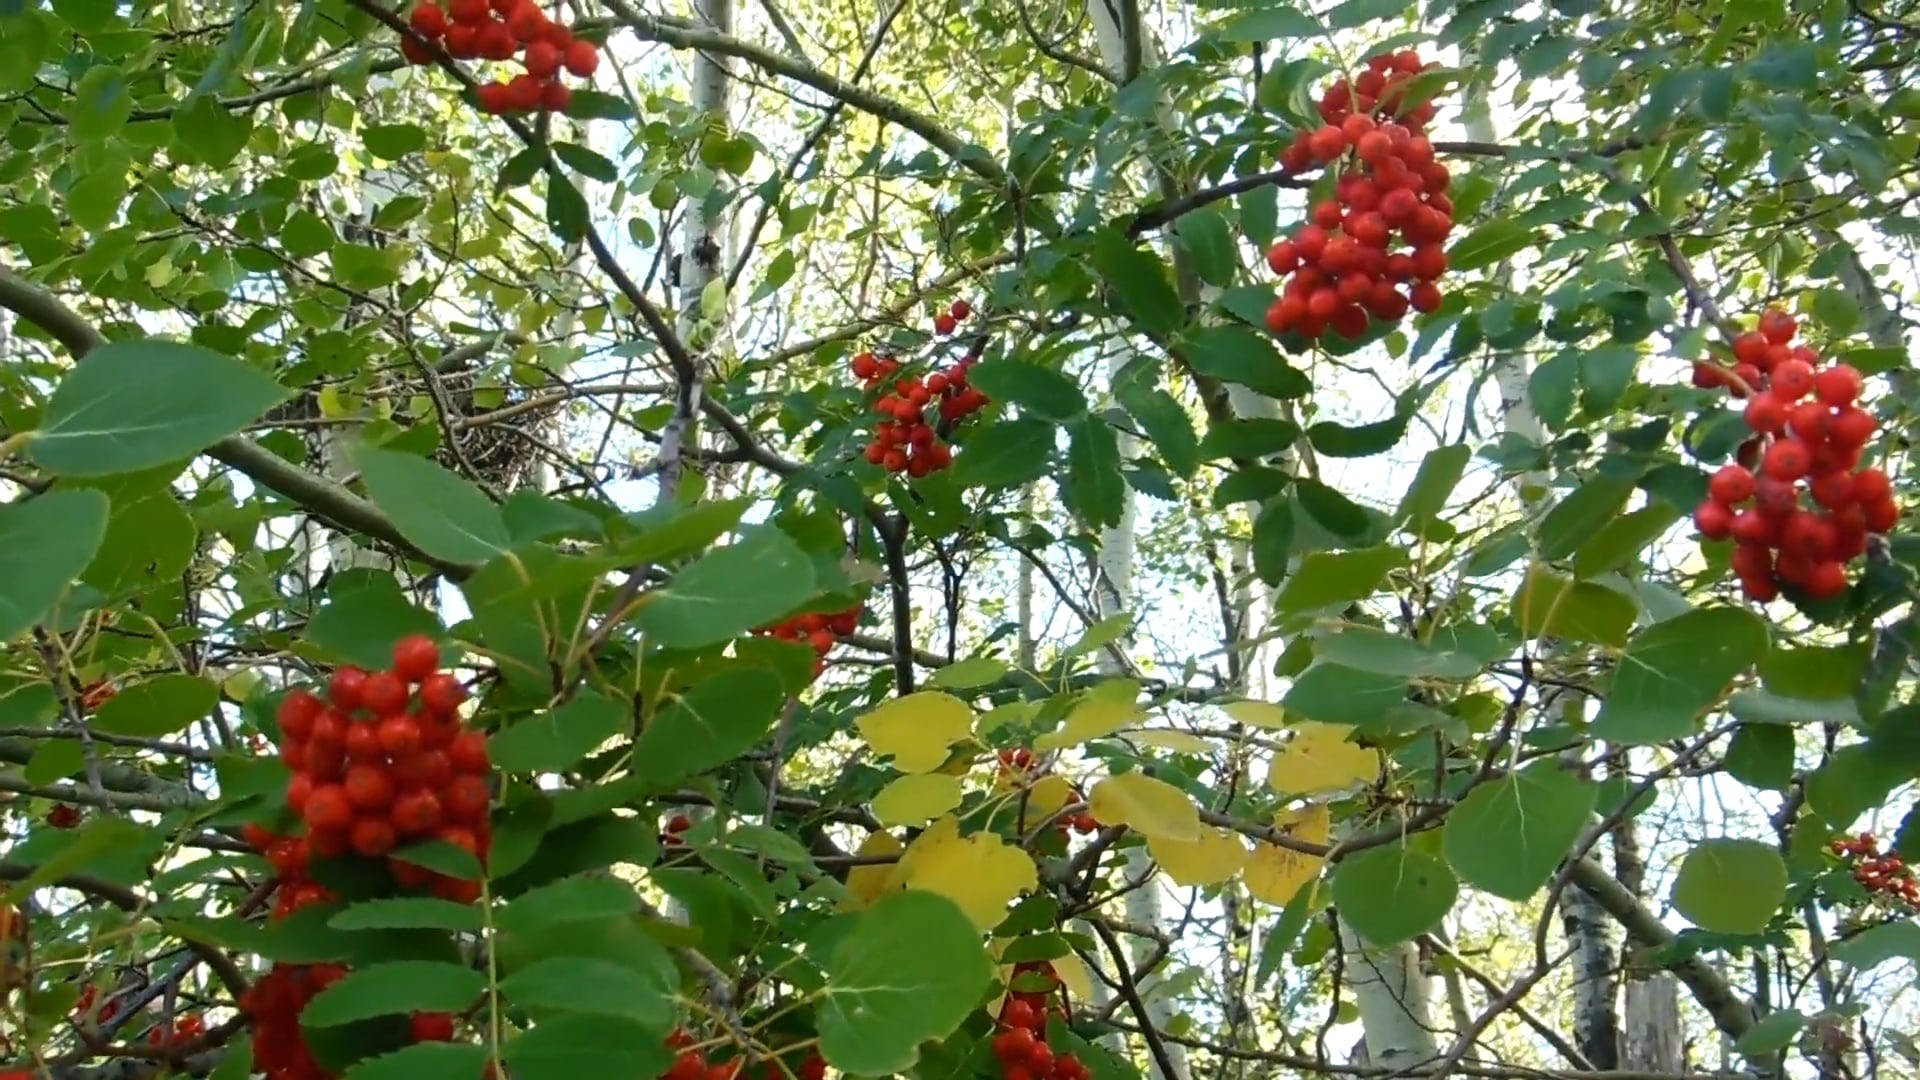 Mountain Ash Tree With Berries